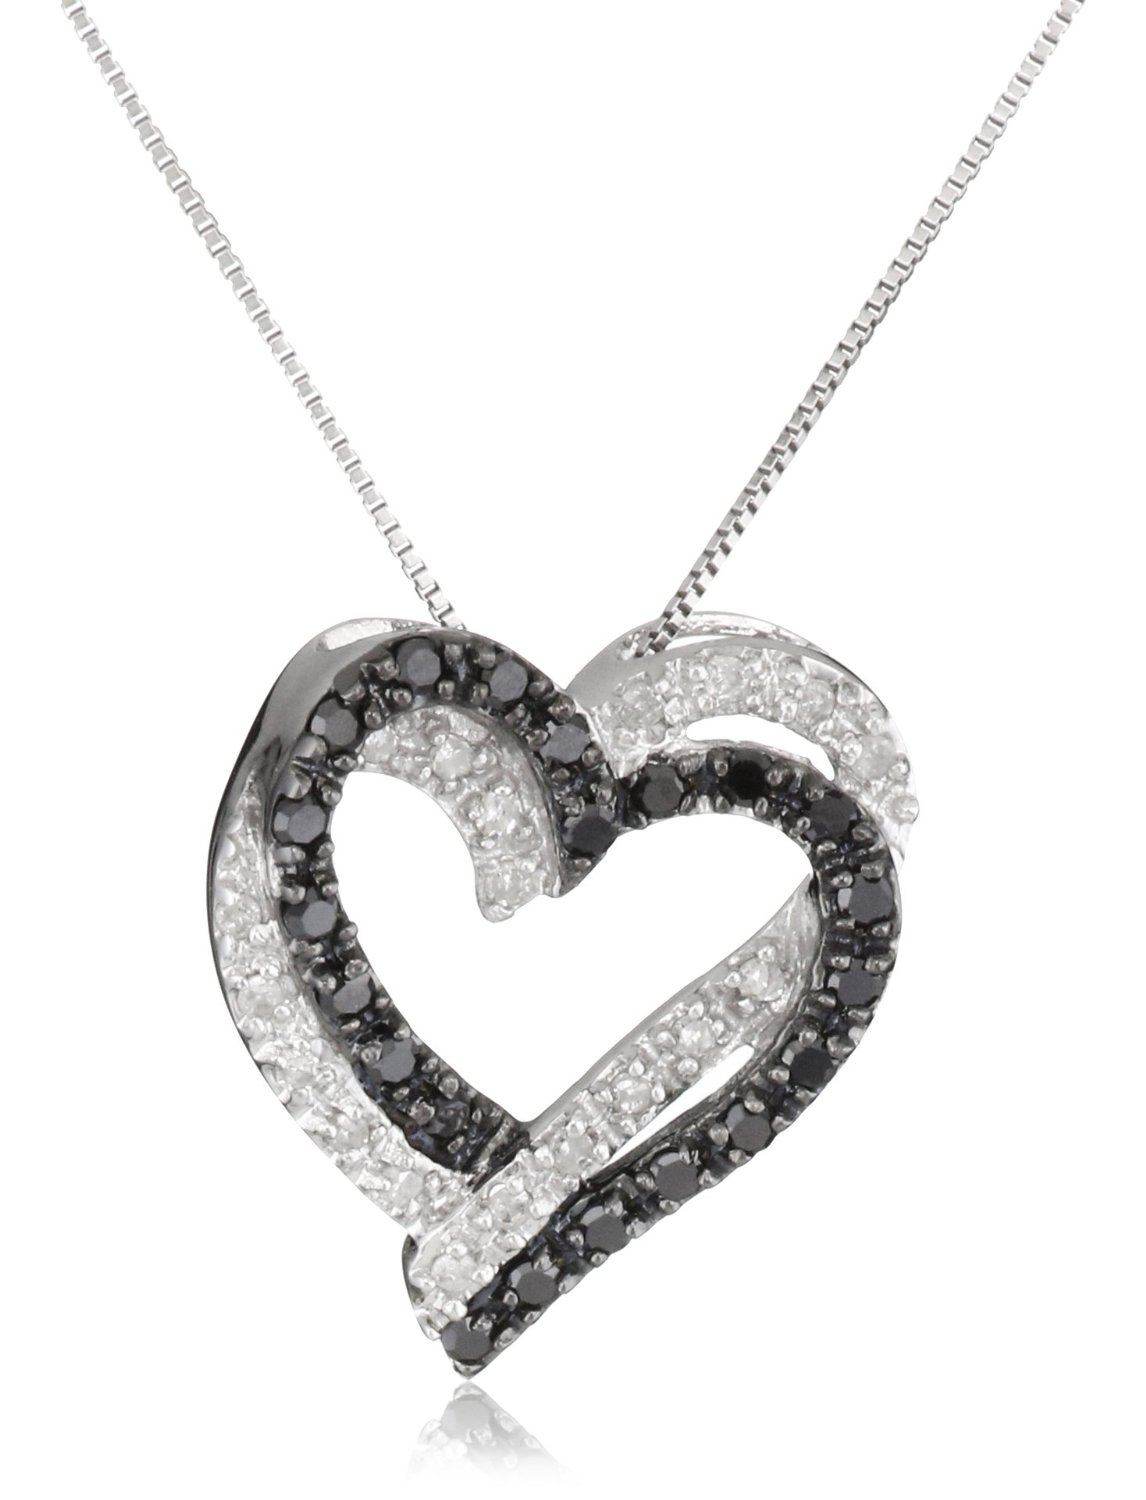 Buy black diamond pendant online gemonediamond 14k white gold natural 060 ct black and white diamond fancy double heart pendant necklace mozeypictures Choice Image